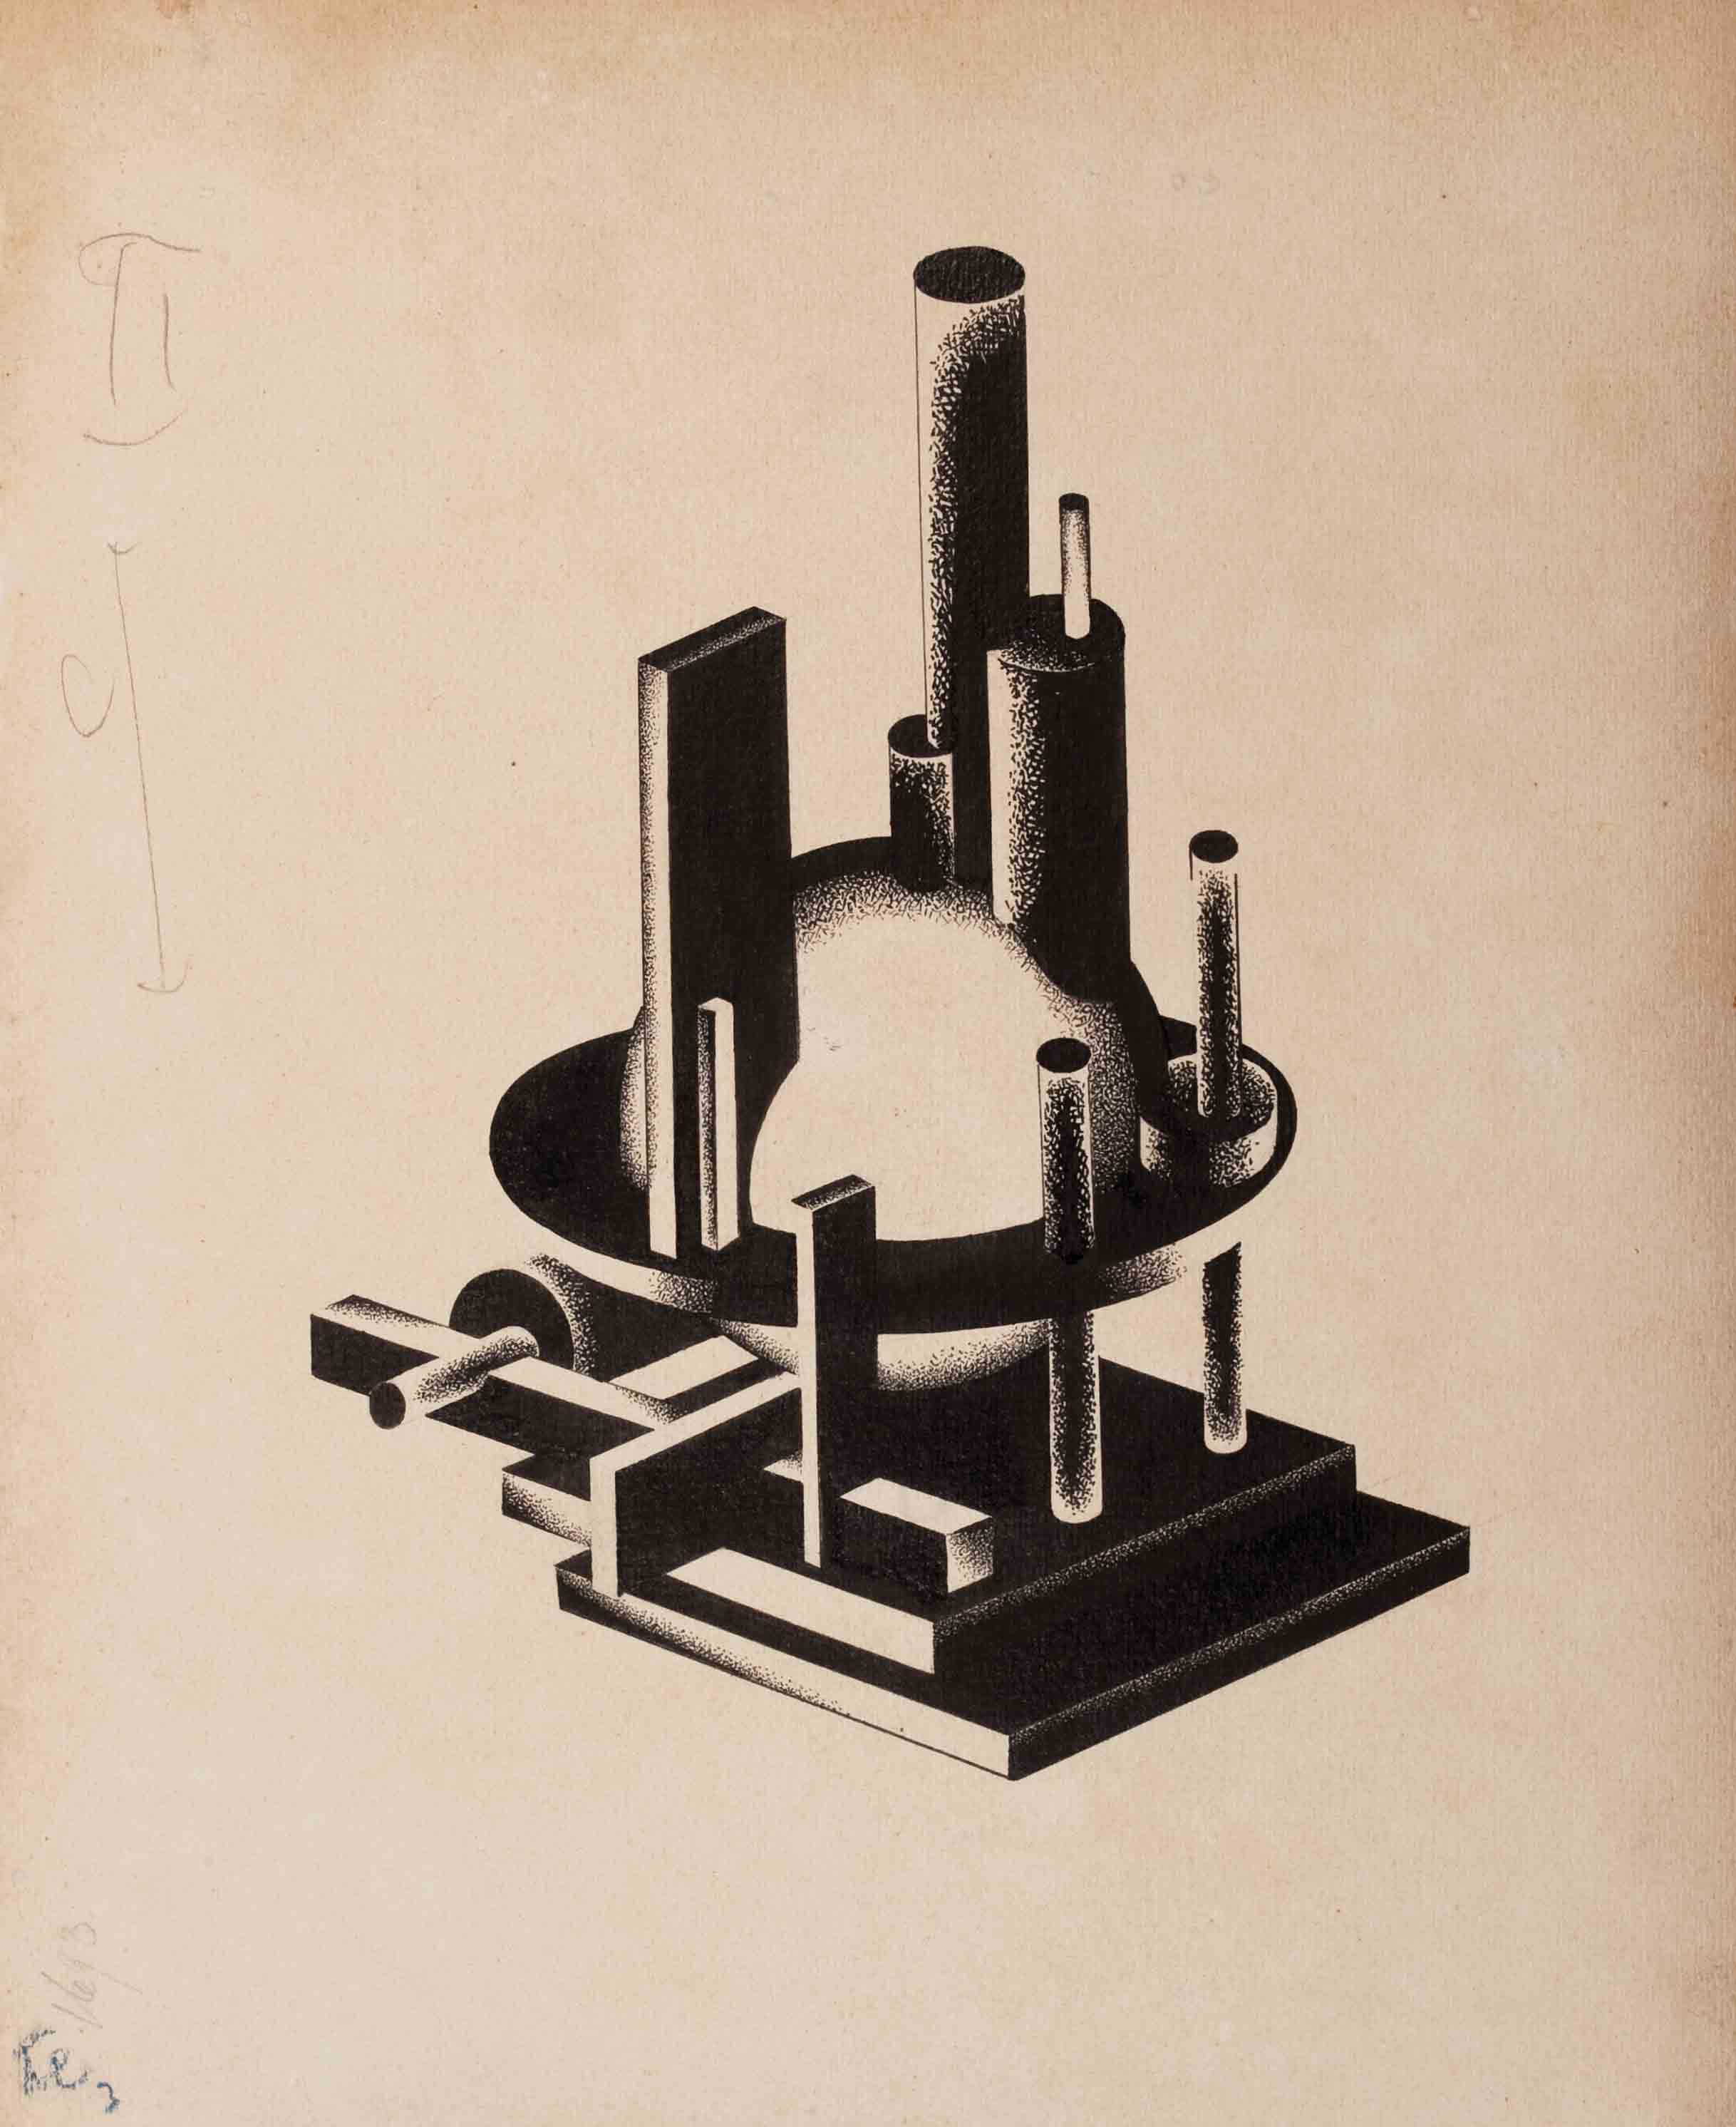 The Constructed Play of Cylindrical, Conical and Spherical Volumes Amongst Themselves that Supports the Through Thrust of Different Angles, late 1920s - Yakov Chernikhov